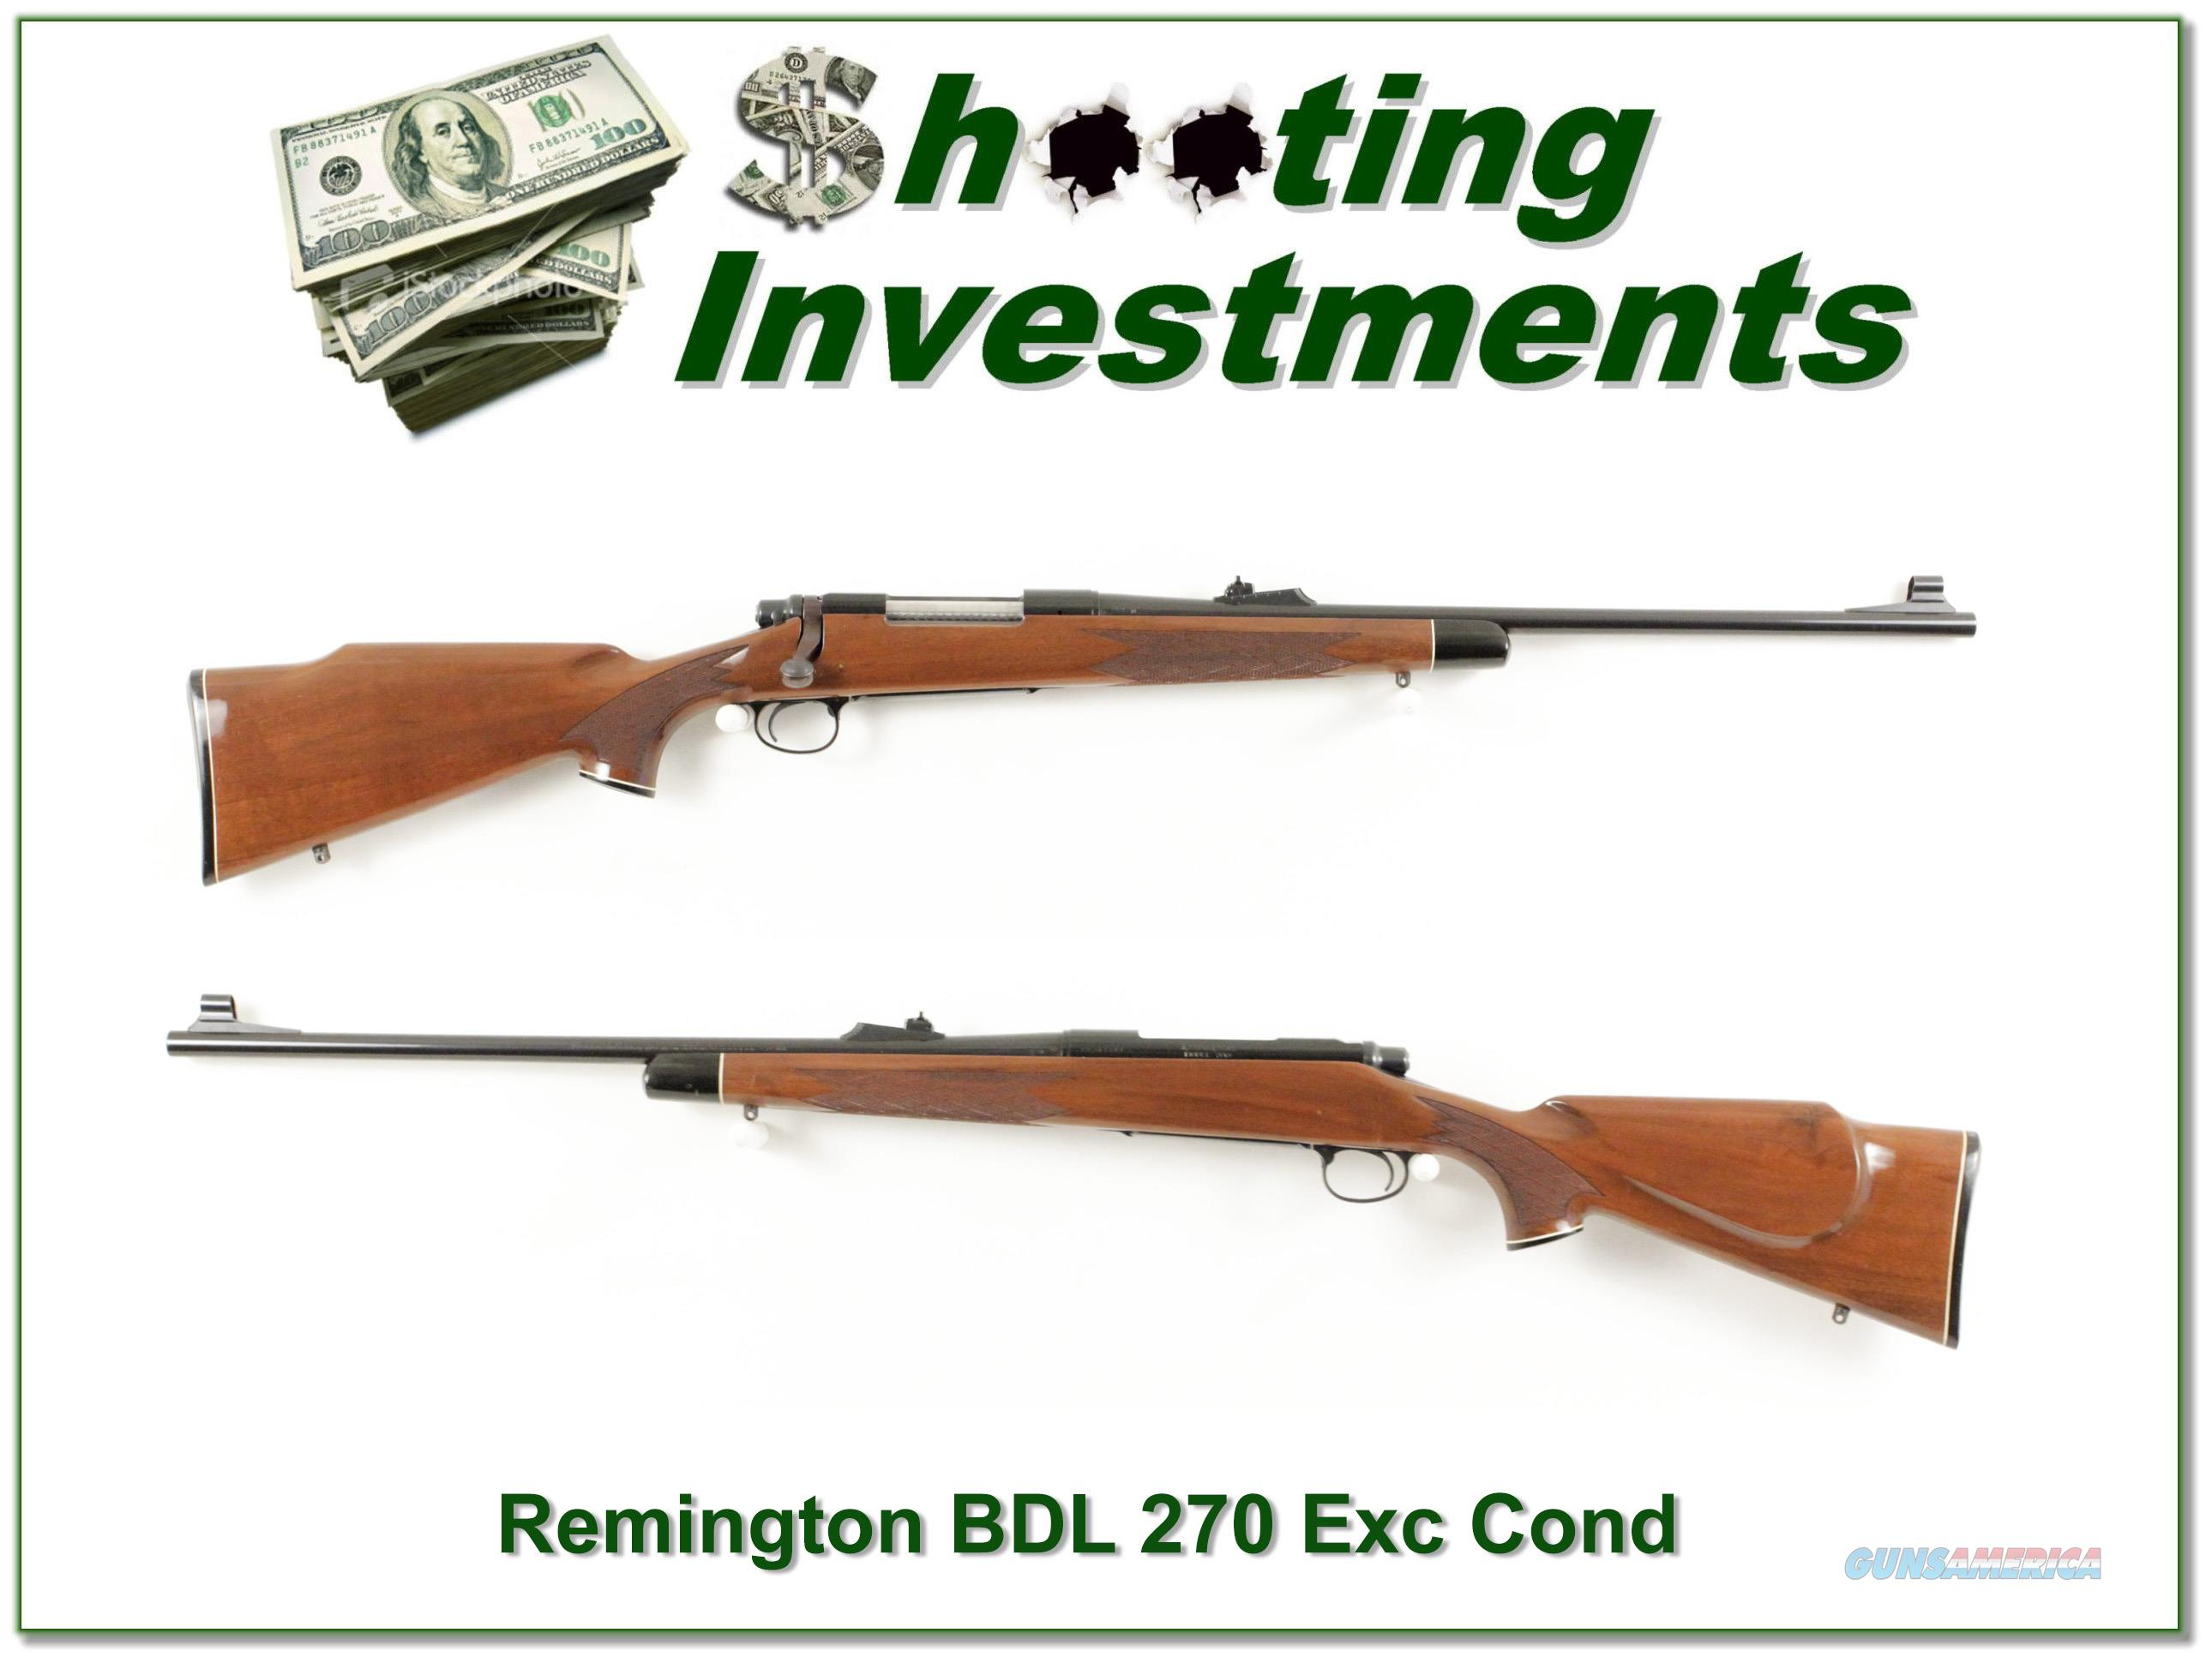 Remington 700 BDL 270 Win Exc Cond  Guns > Rifles > Remington Rifles - Modern > Model 700 > Sporting